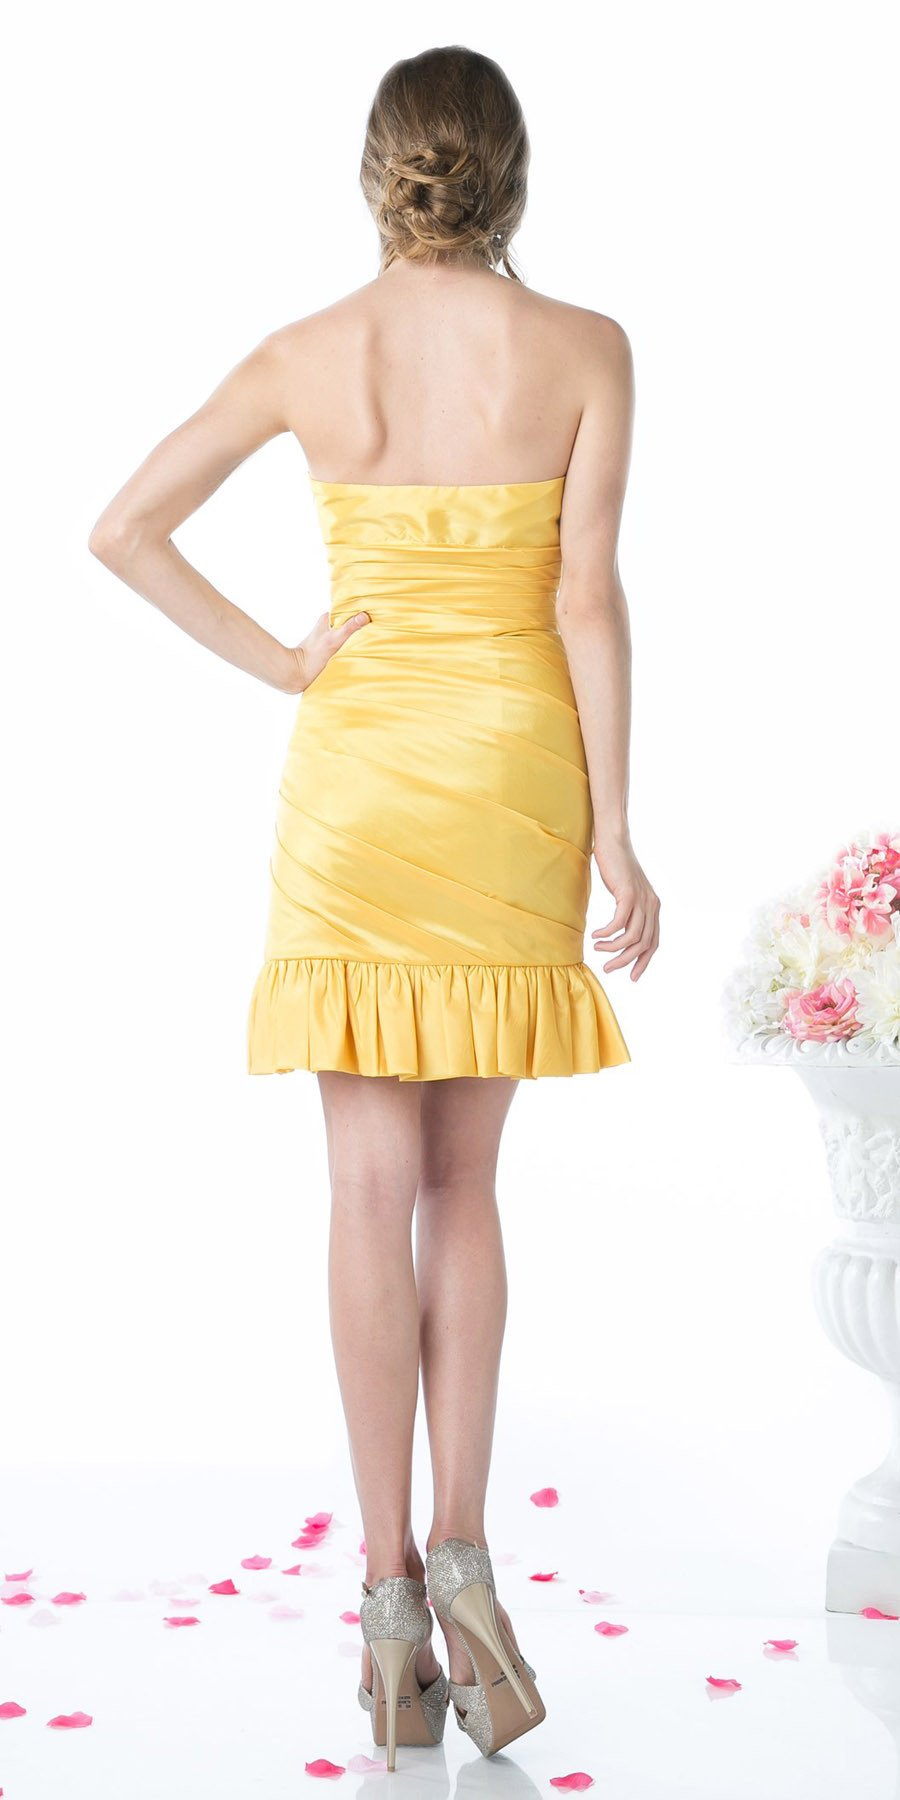 CLEARANCE - Form Fitting Strapless Jade Short Dress Ruffled Skirt